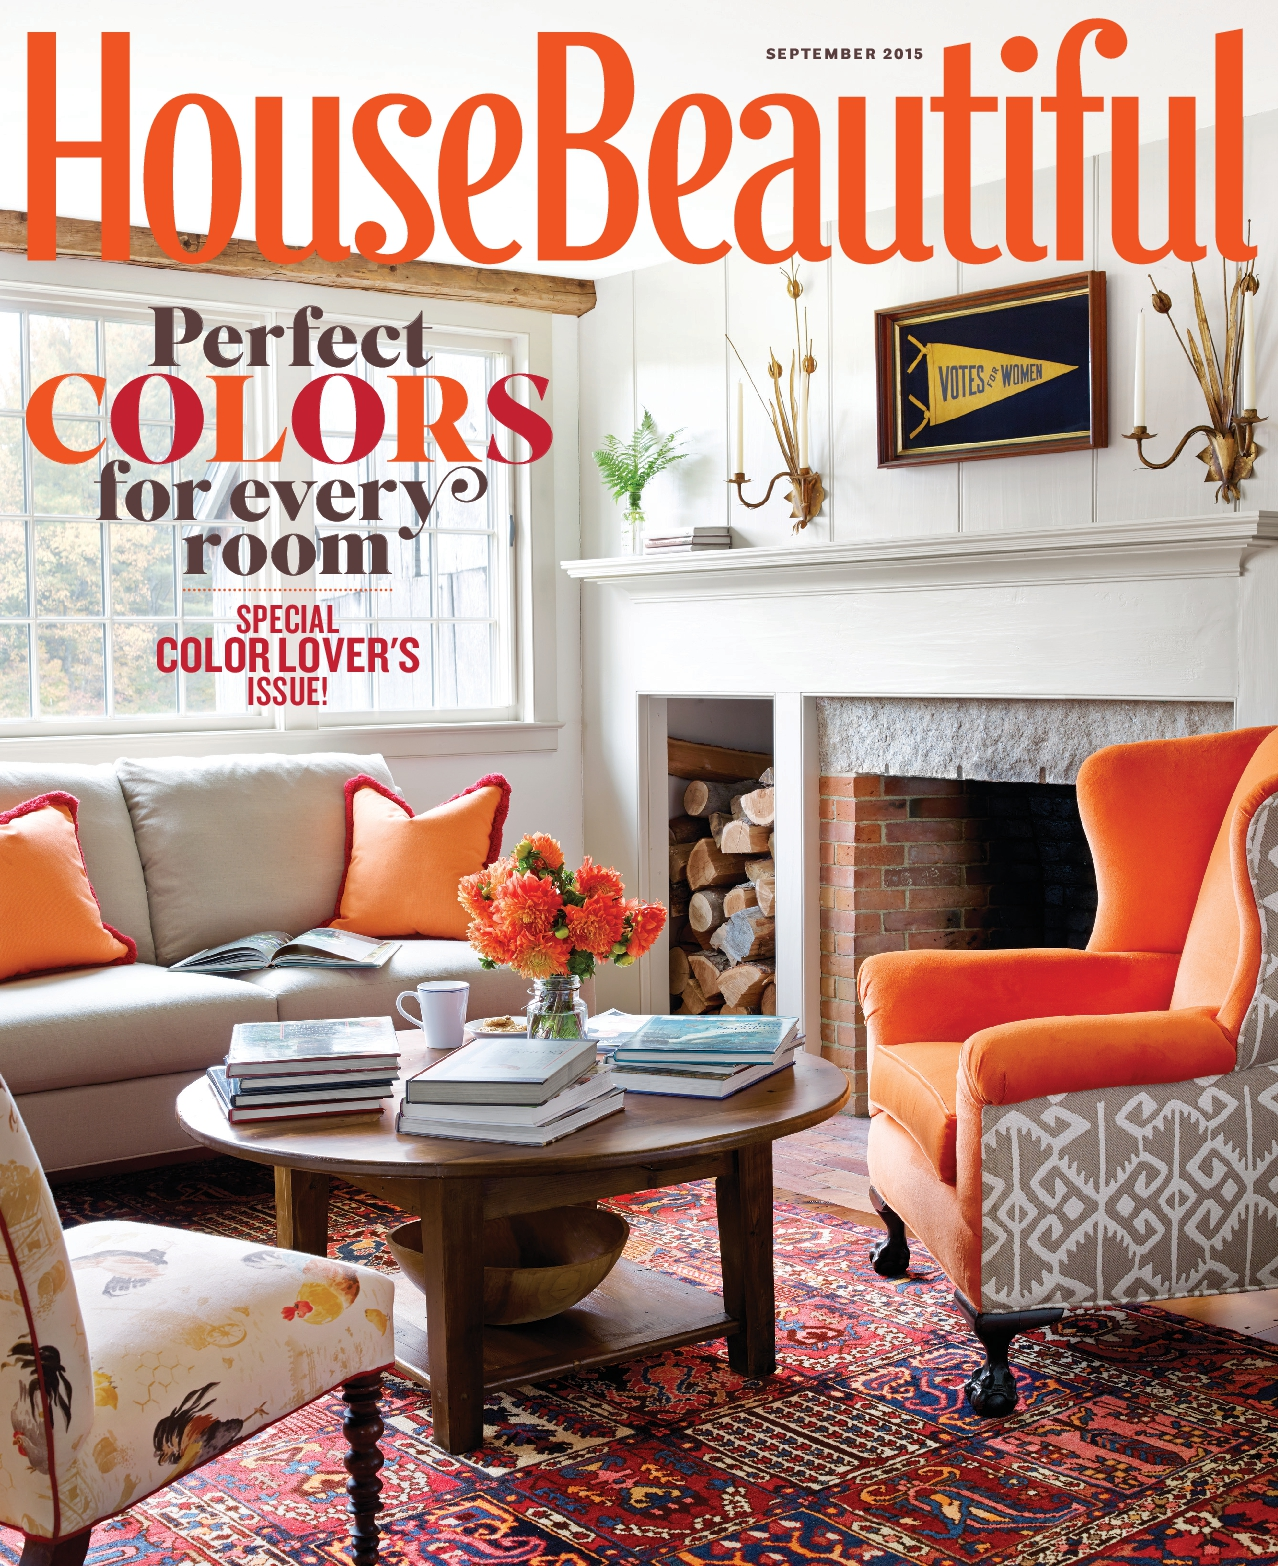 House Beutiful september 2015 house beautiful - shopping resources